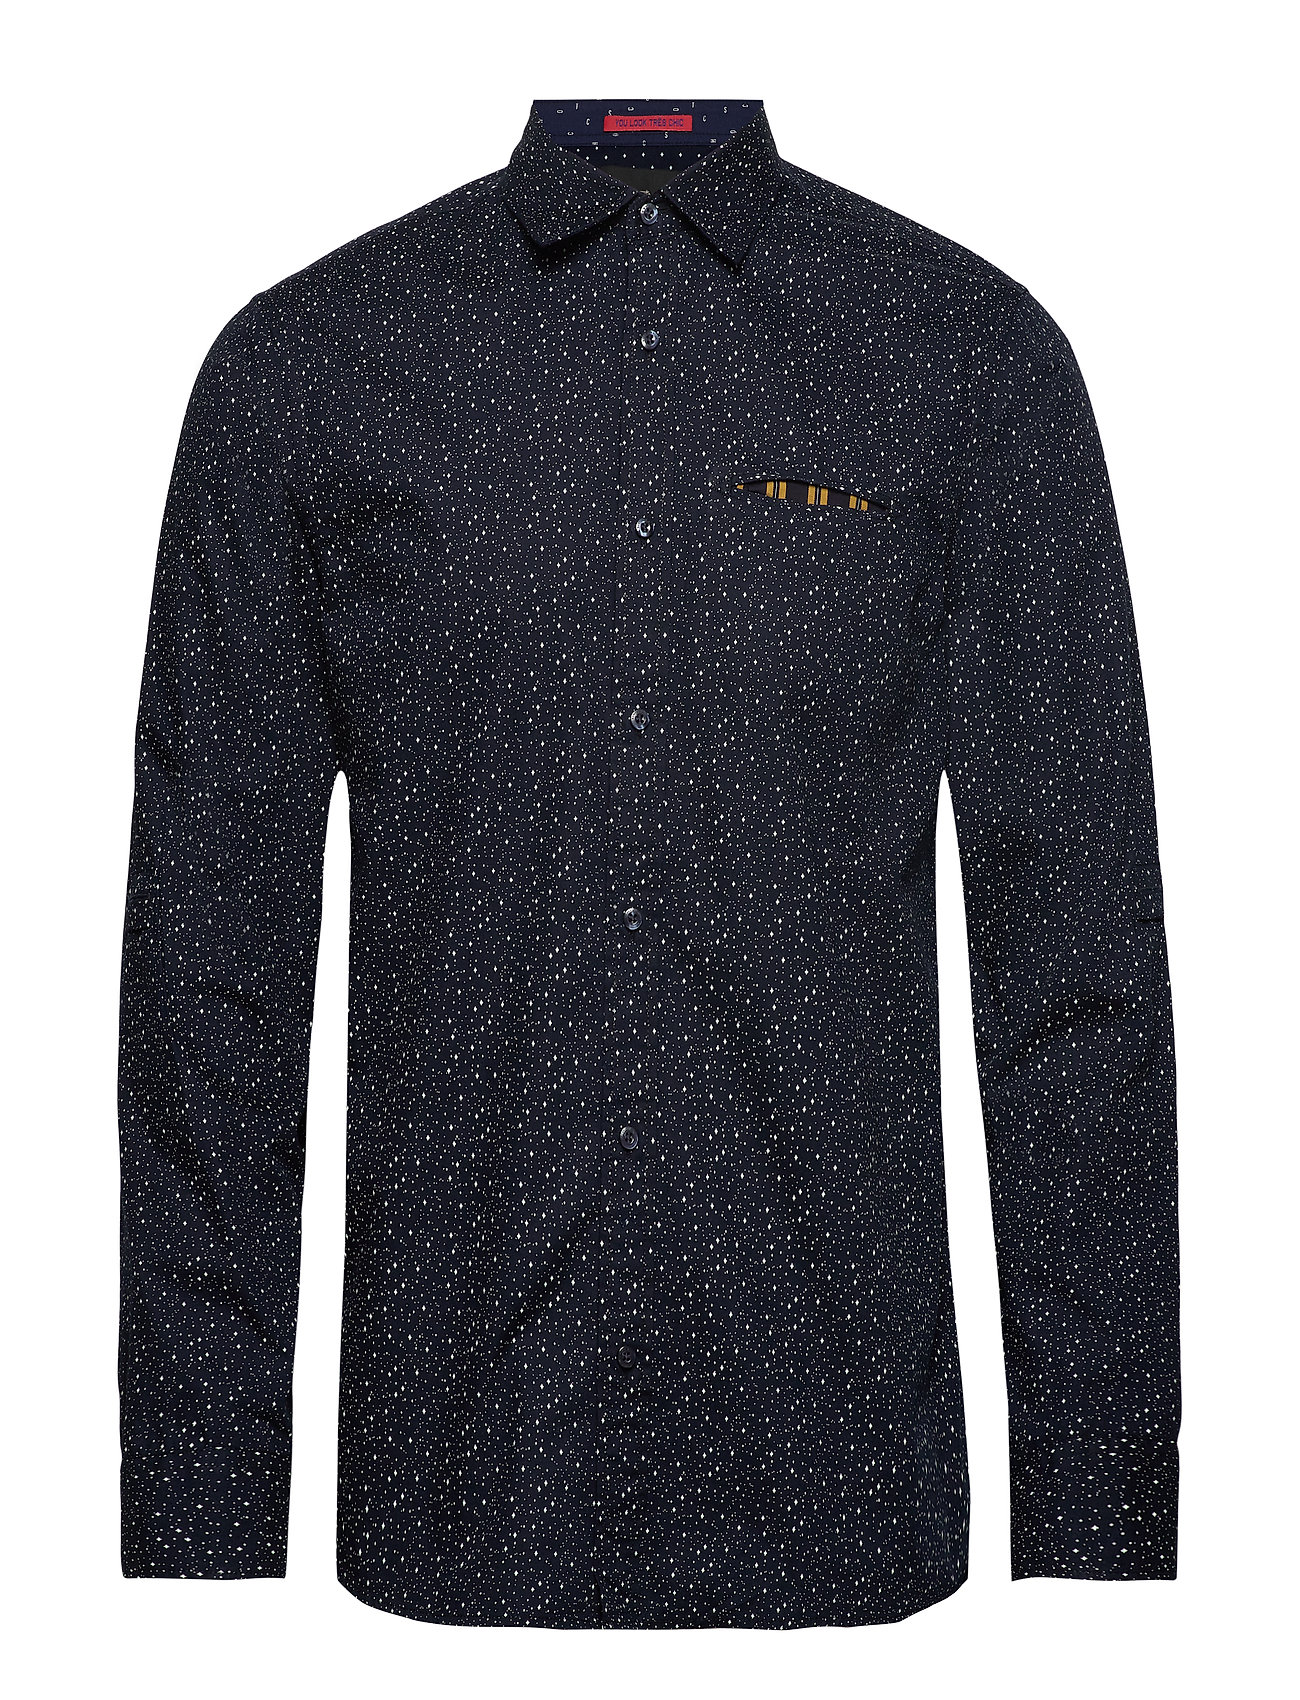 Scotch & Soda REGULAR FIT- Classic all-over printed pochet shirt - COMBO F